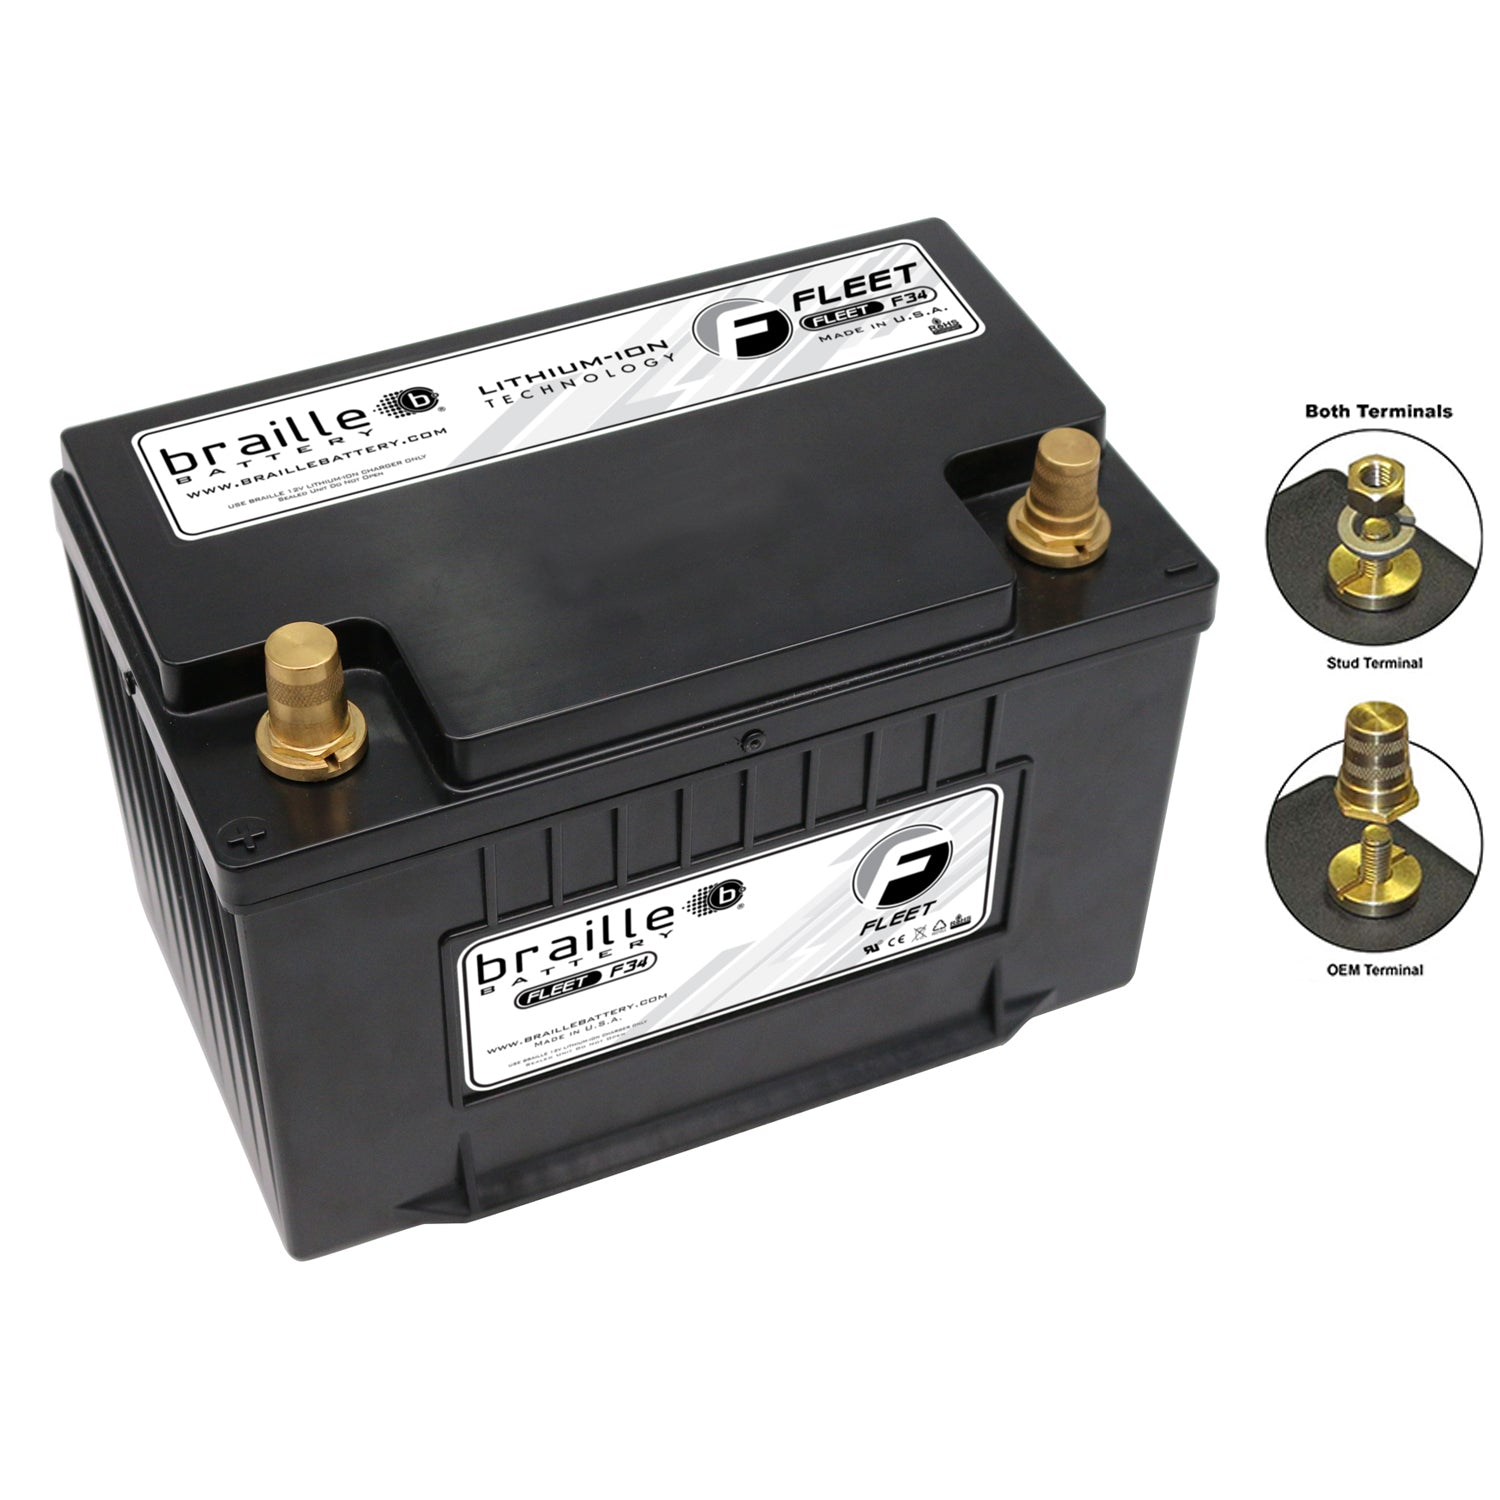 F34 - Fleet-Lite Lithium (Group 34) Starting/Power Supply battery